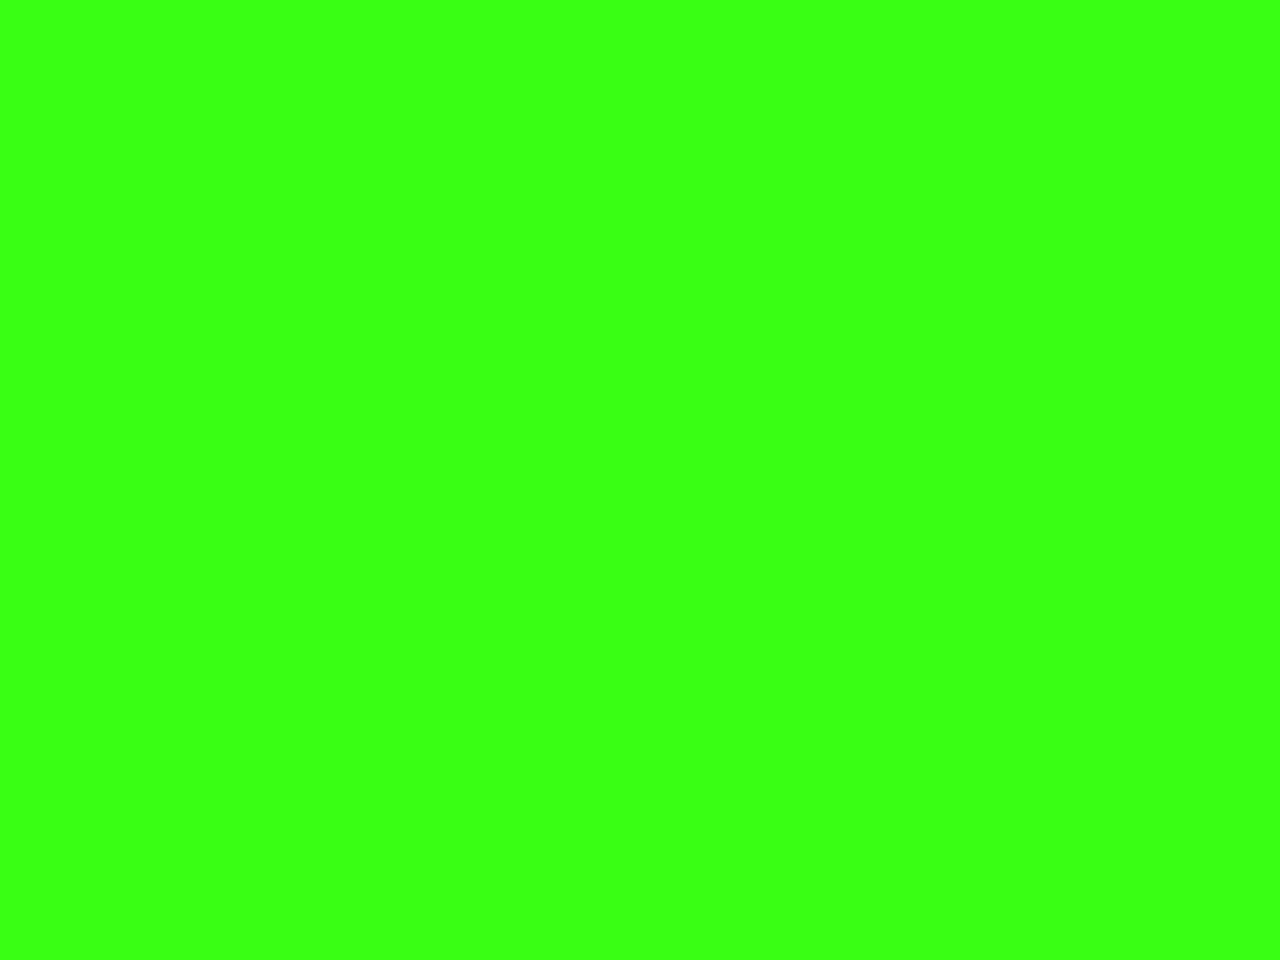 1280x960 Neon Green Solid Color Background